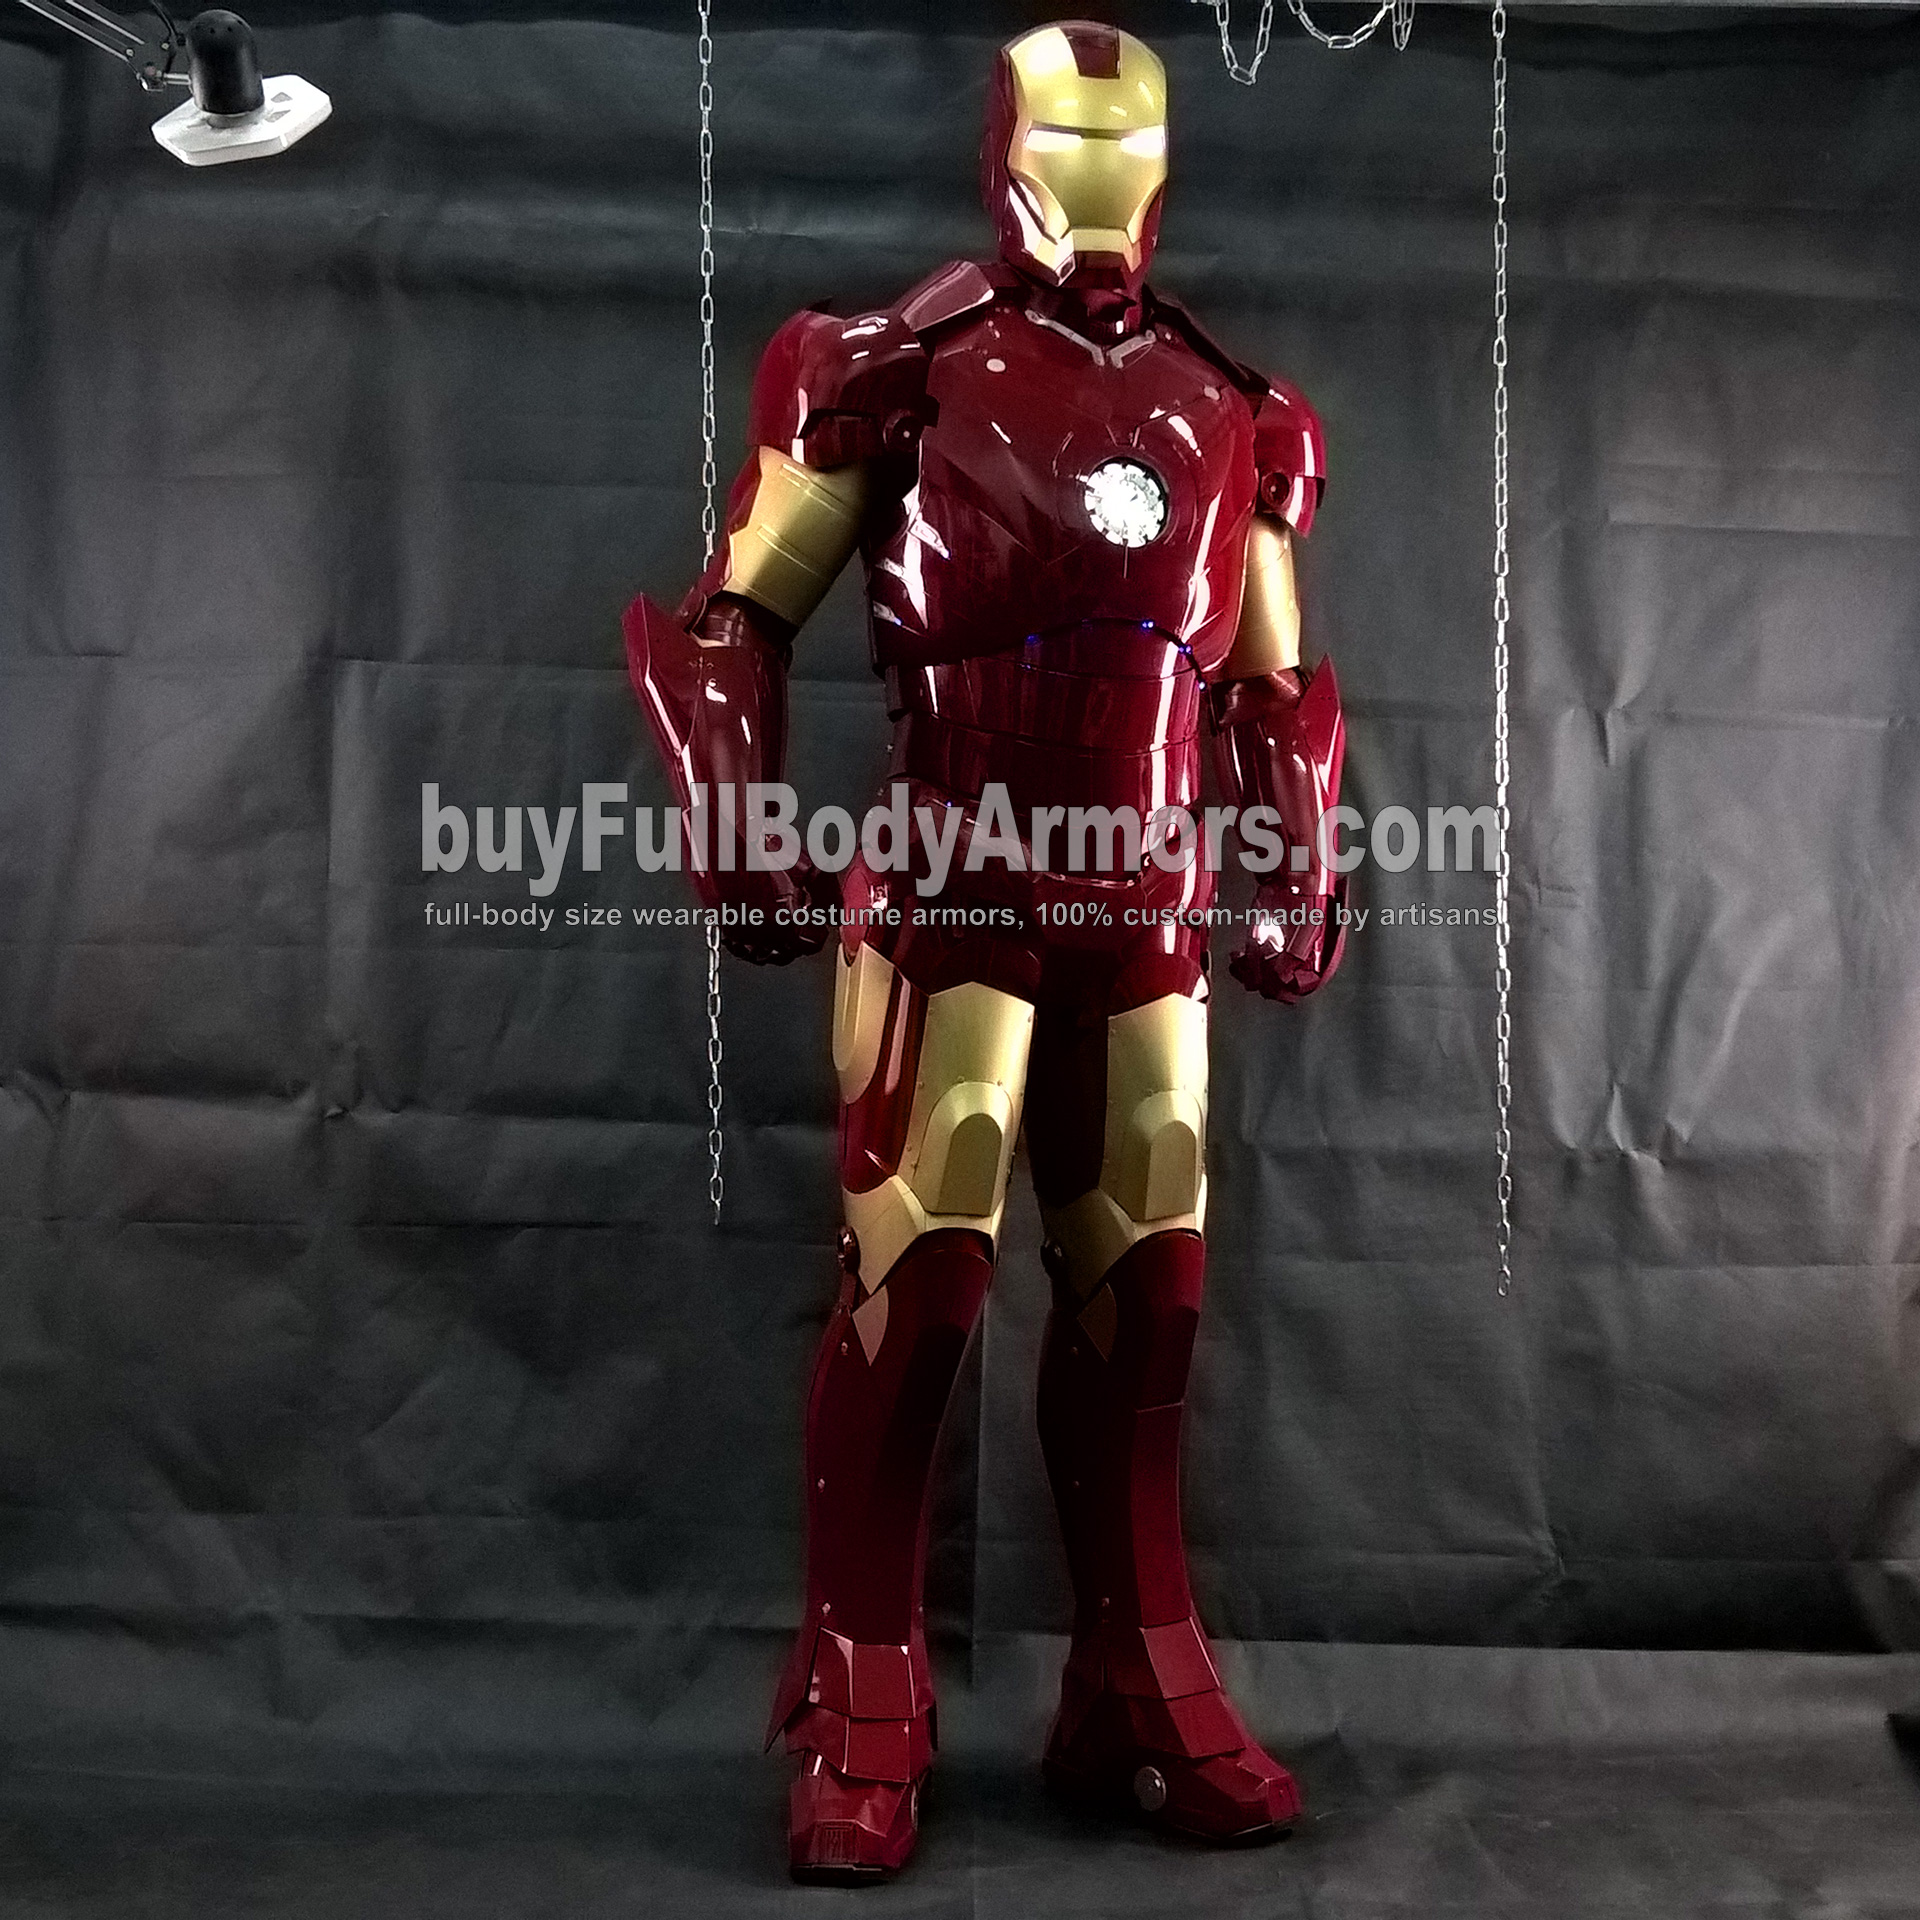 Wearing the Wearable Iron Man Suit Mark 3 III Armor Costume - Photos 6